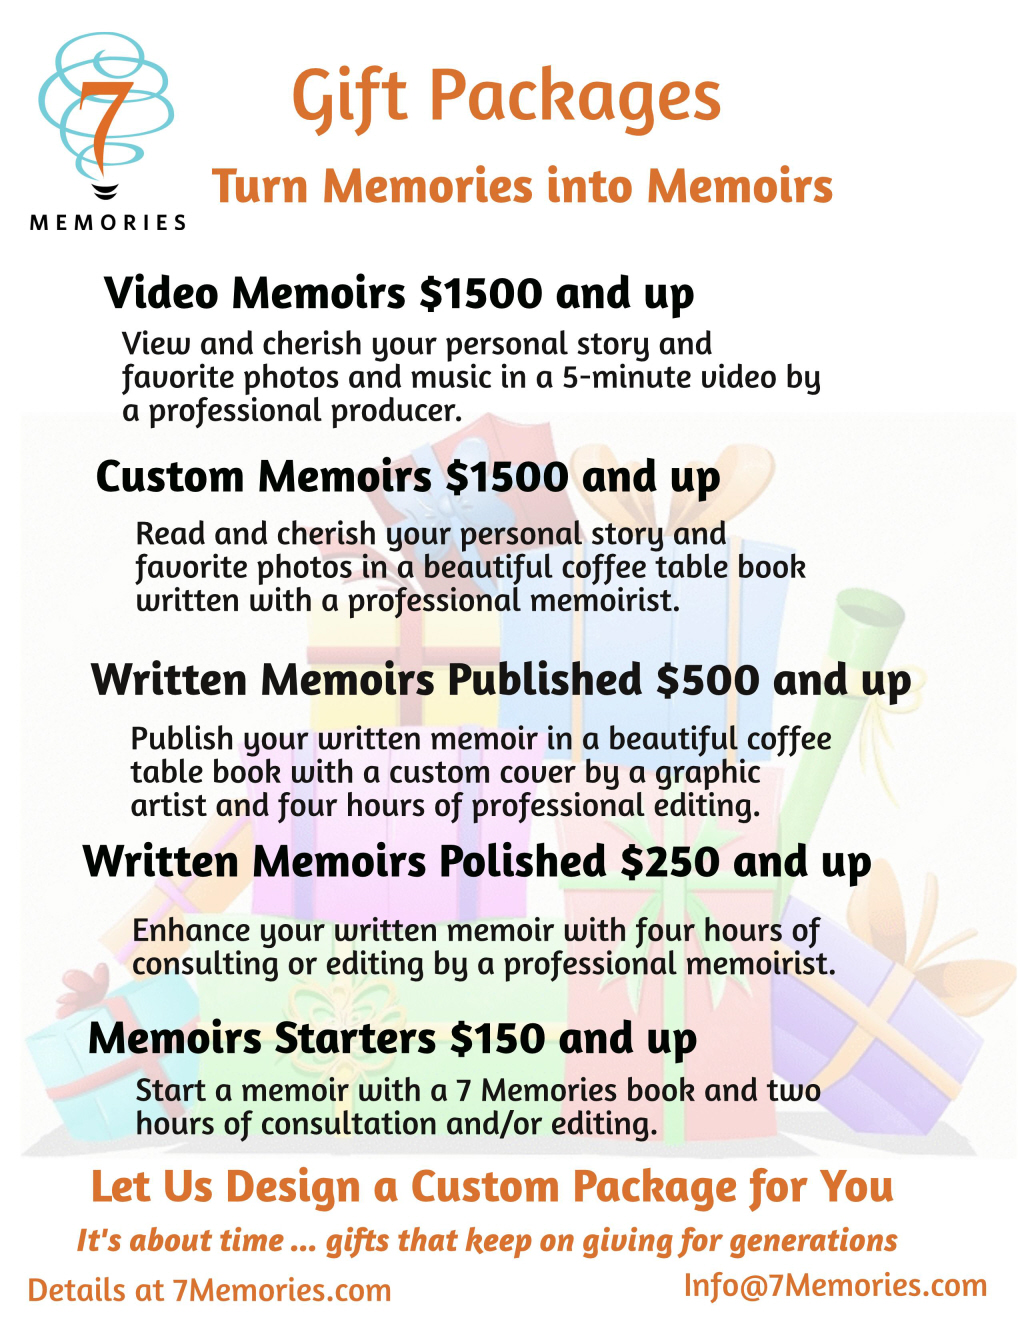 Memoir writing packages for every writing need and budget create a legacy that will live forever write it yourself partner with a loved one or let 7 memories do it for you solutioingenieria Images